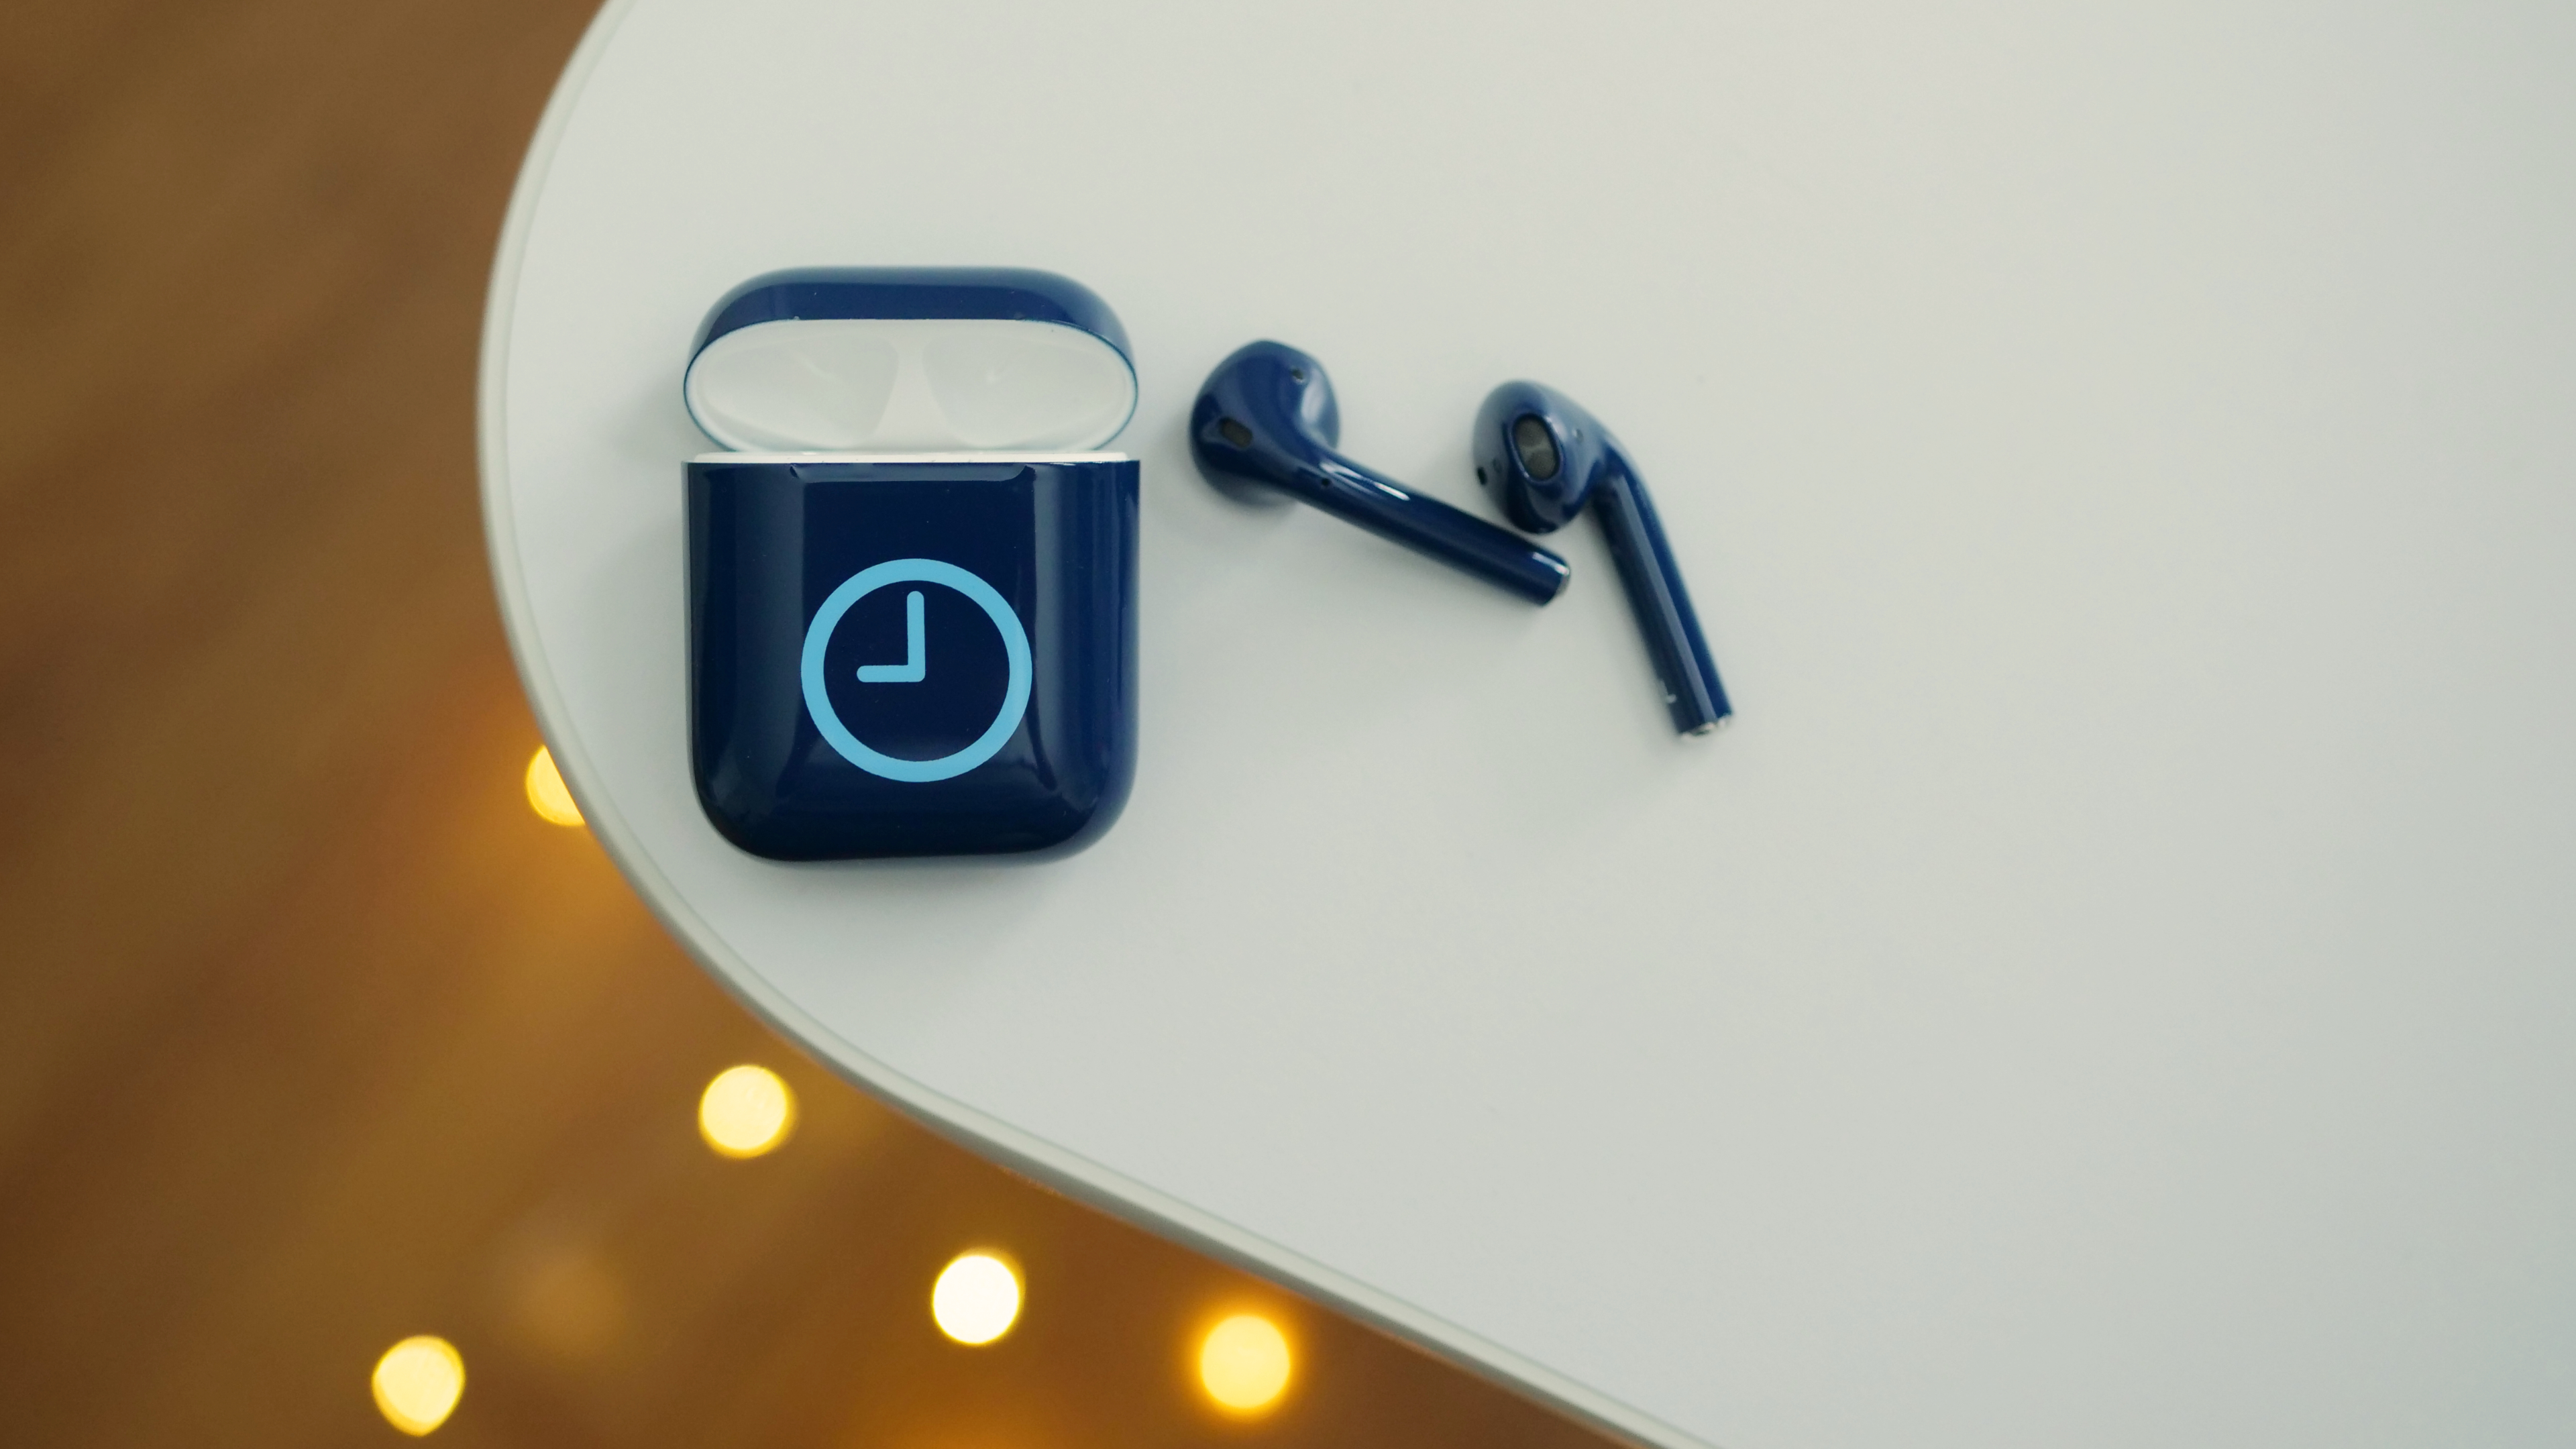 9to5Rewards: Win these customized dark blue '9to5Mac Edition' AirPods from Colorware